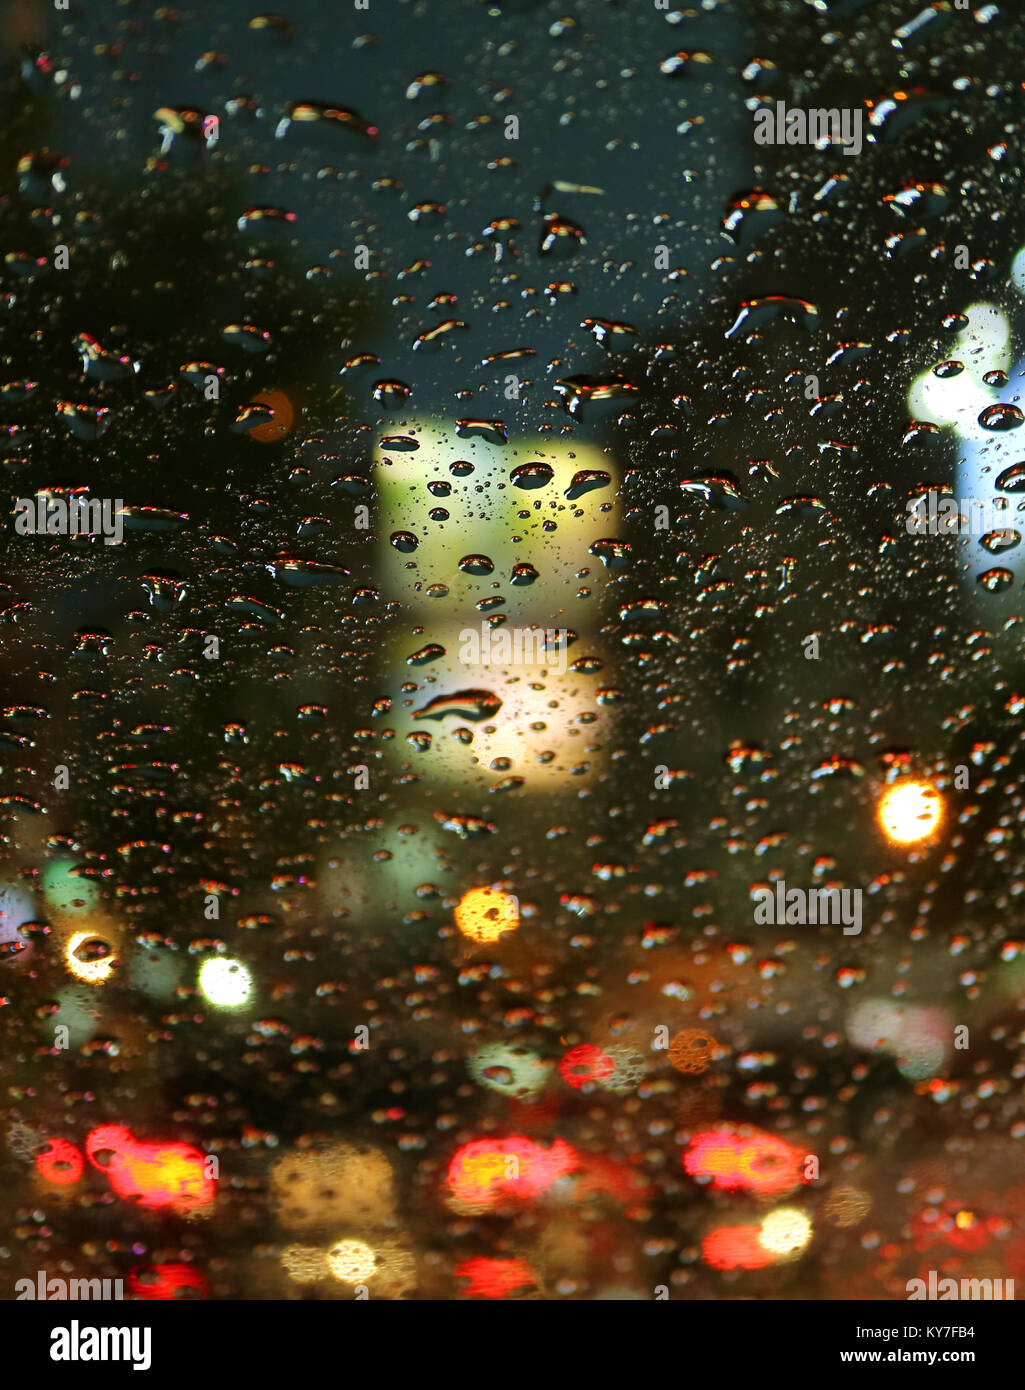 Closed up raindrops on the car windshield during a driving on the urban street at night - Stock Image